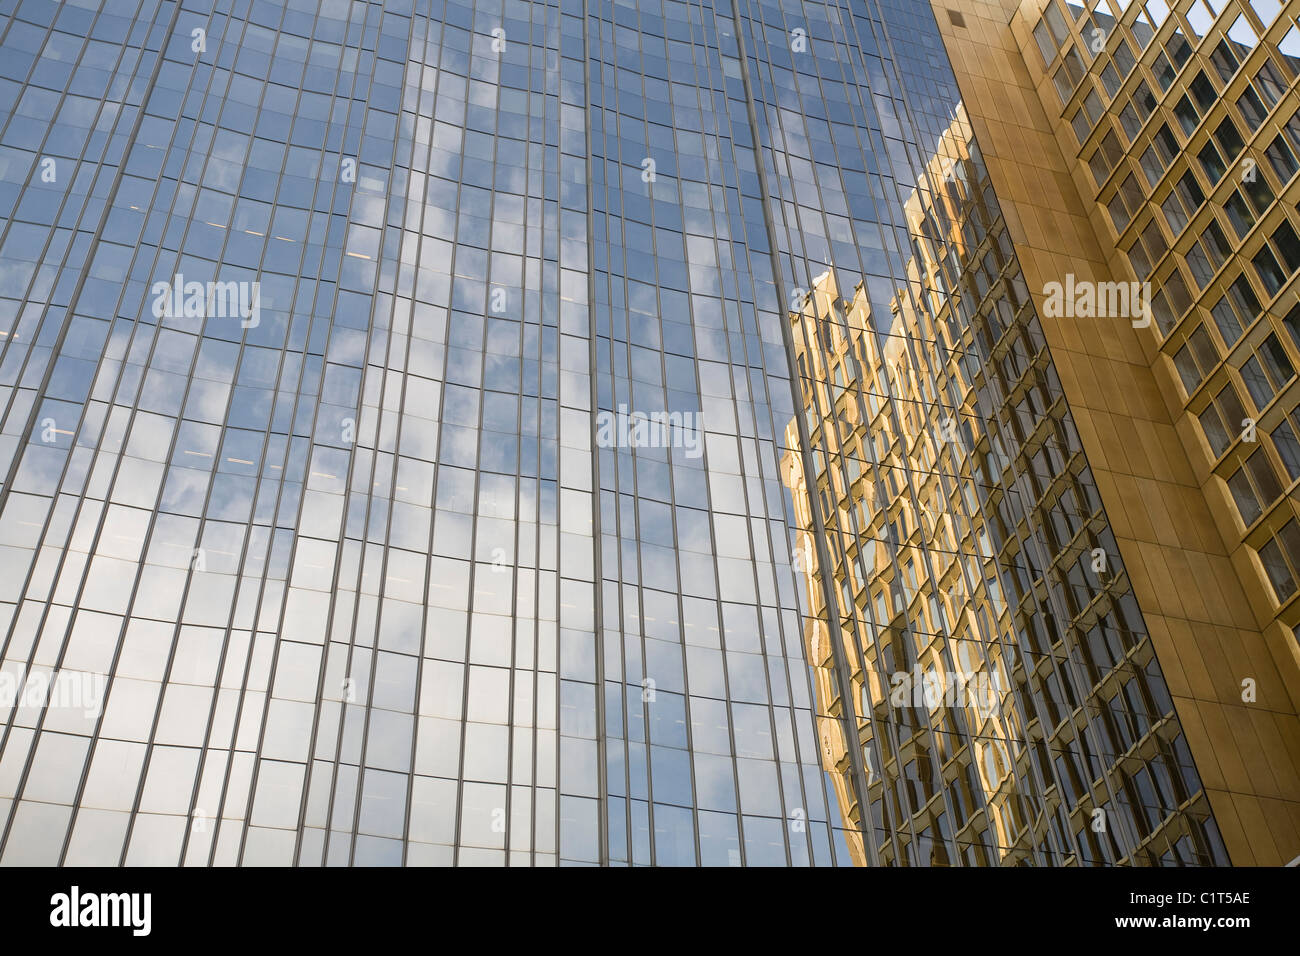 Germany, Berlin, Axel Springer publishing house - Stock Image